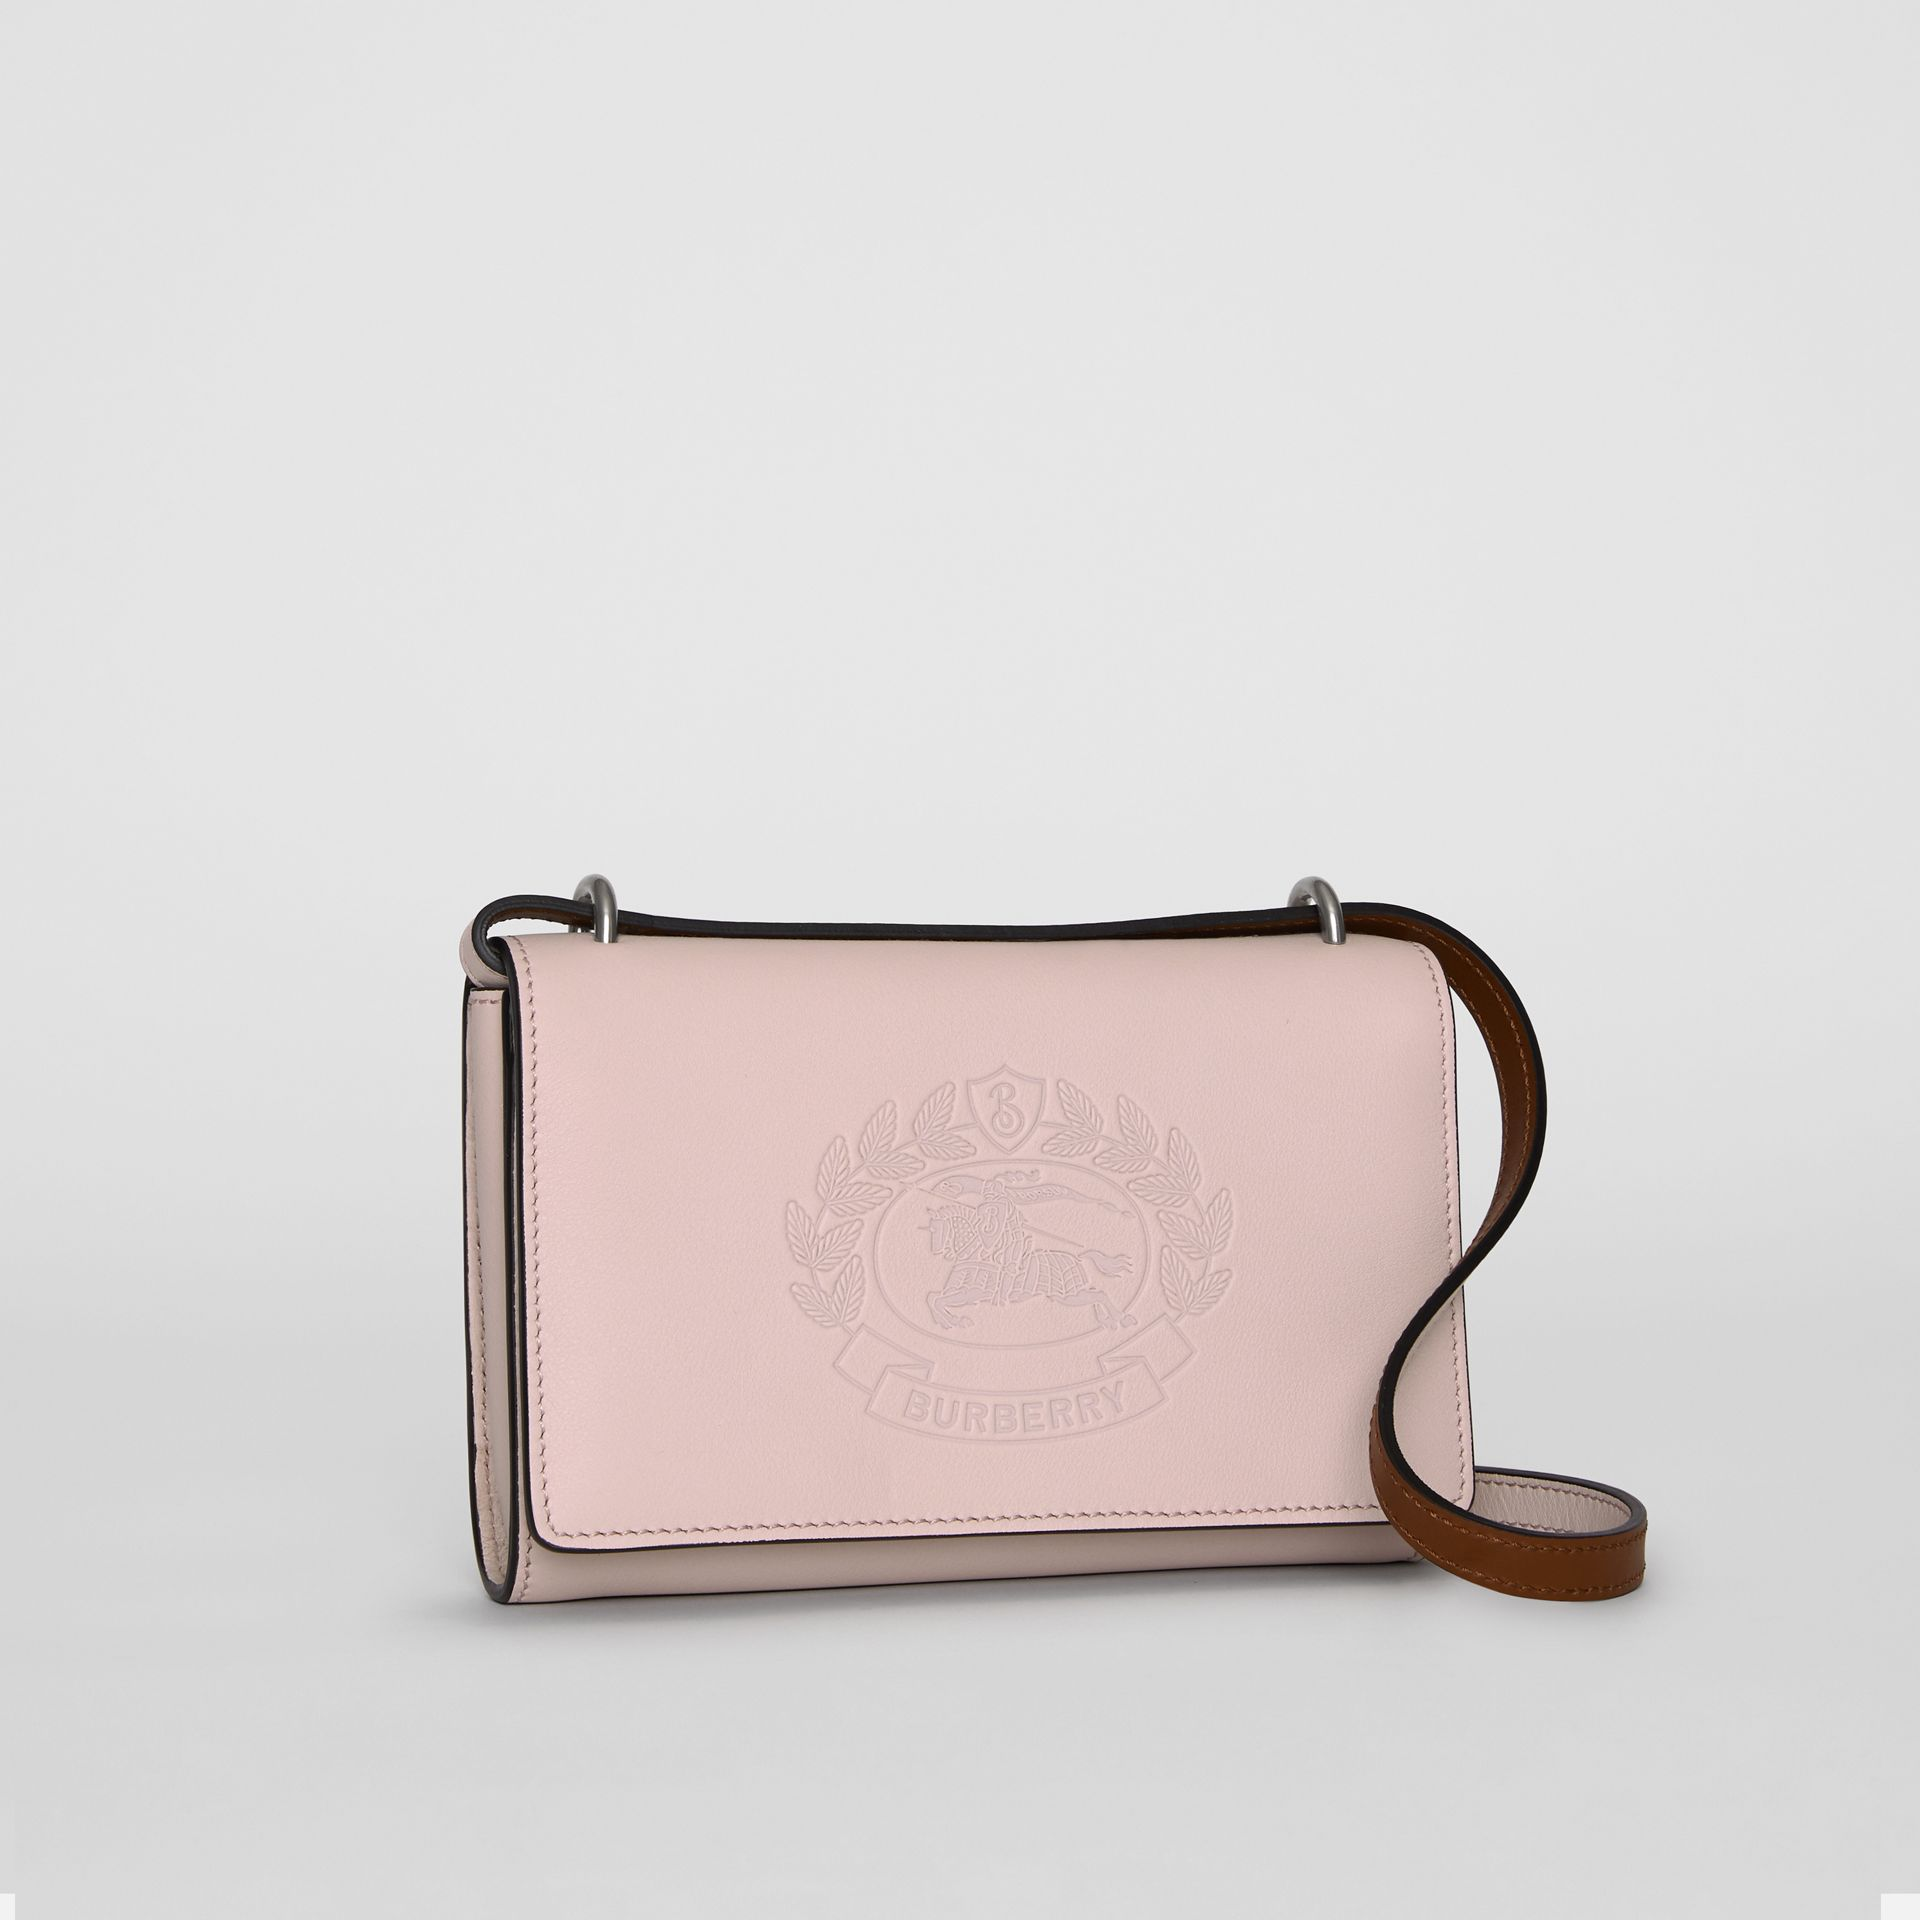 Embossed Crest Leather Wallet with Detachable Strap in Chalk Pink - Women | Burberry - gallery image 6